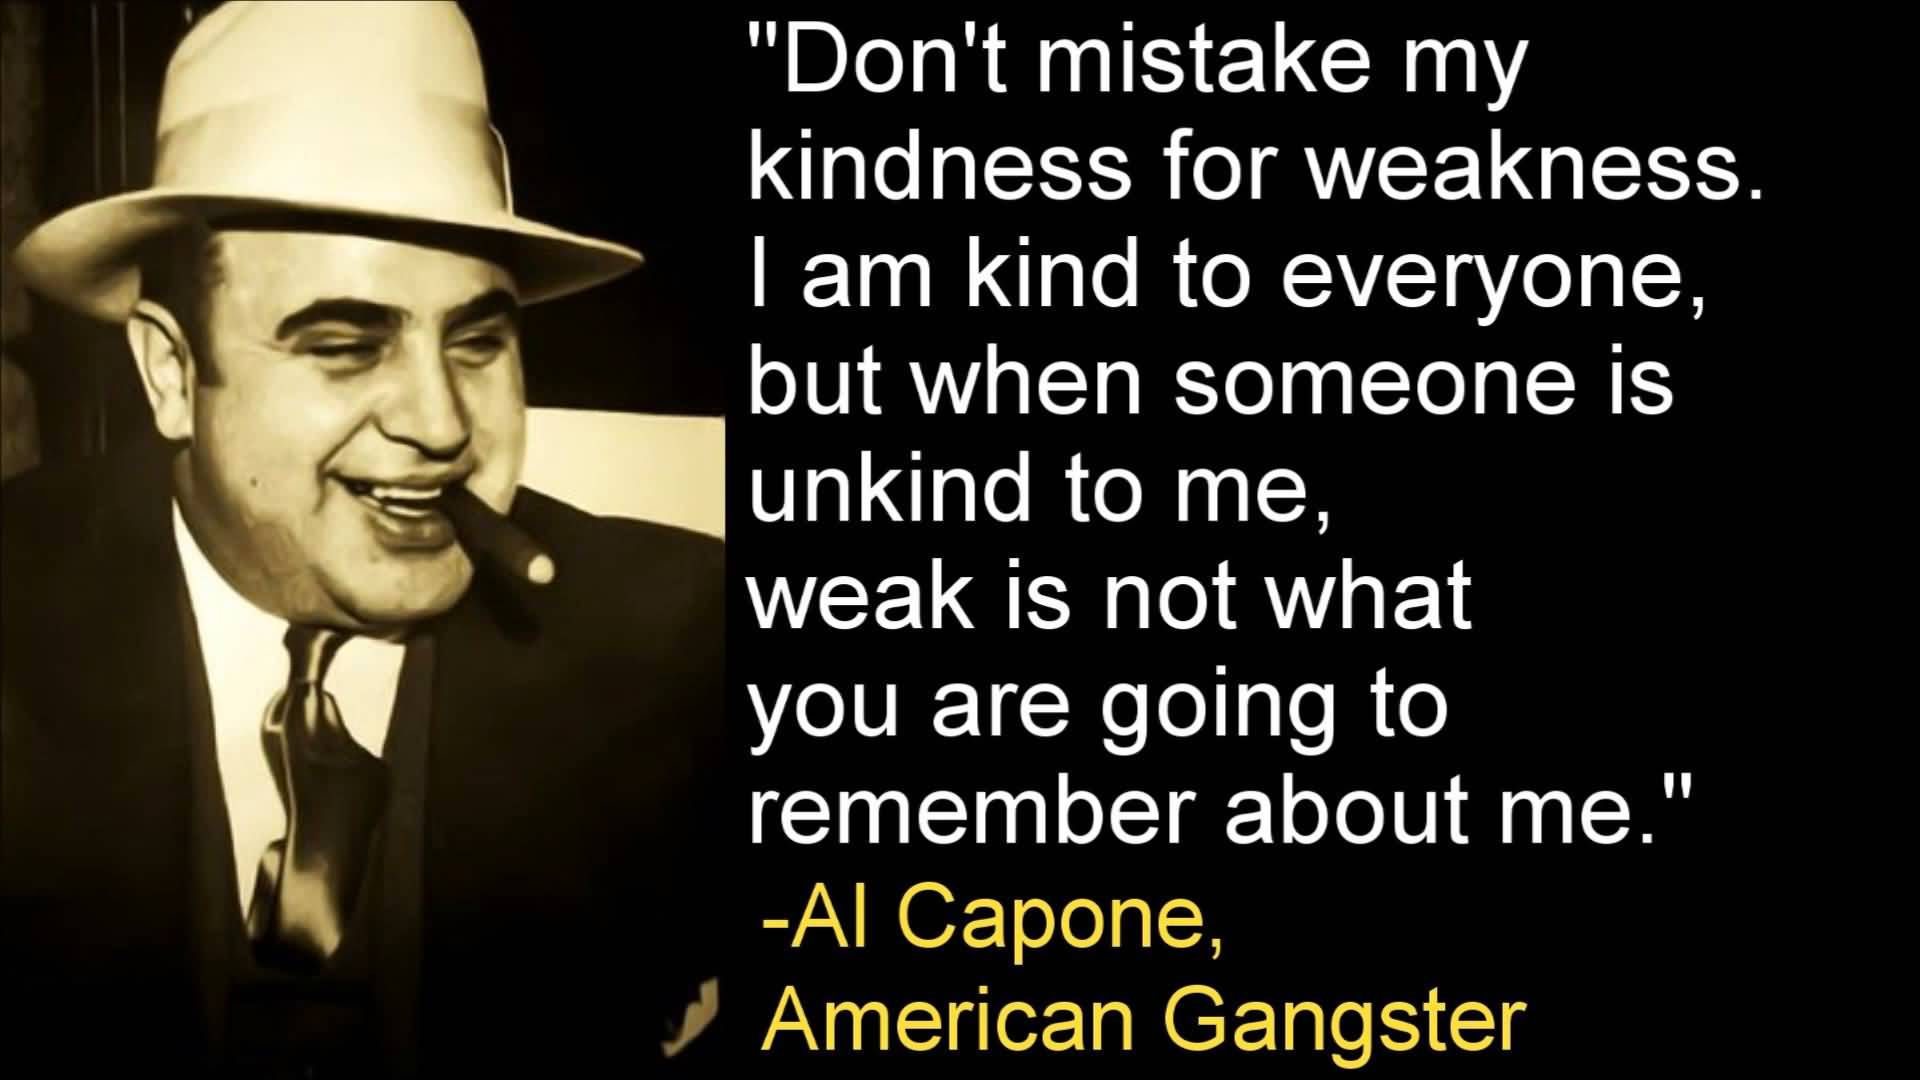 La Capone Quotes Don't Mistake My Kindness